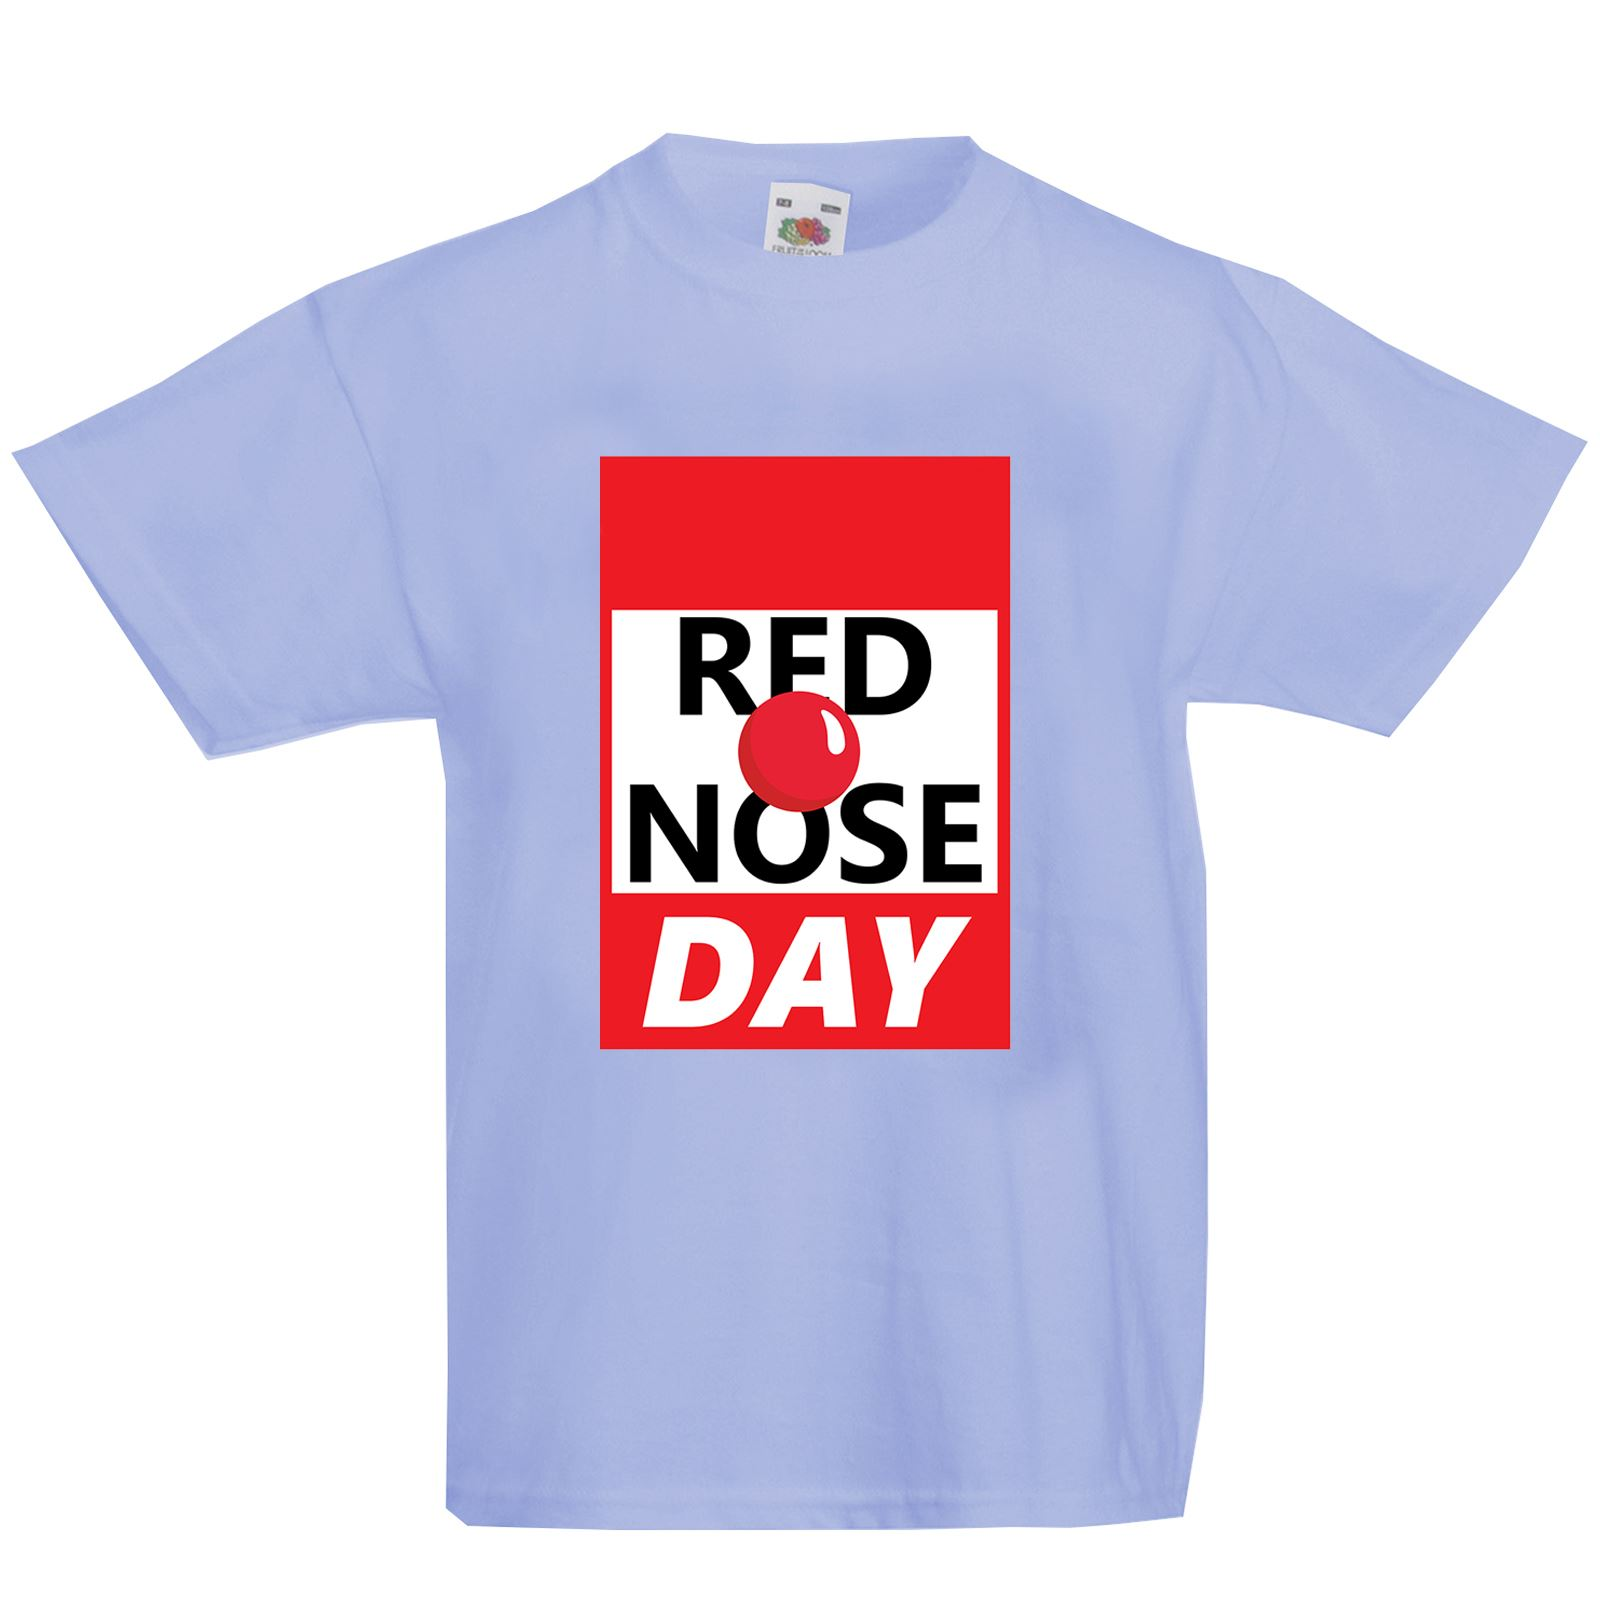 Red nose day fashion t shirt